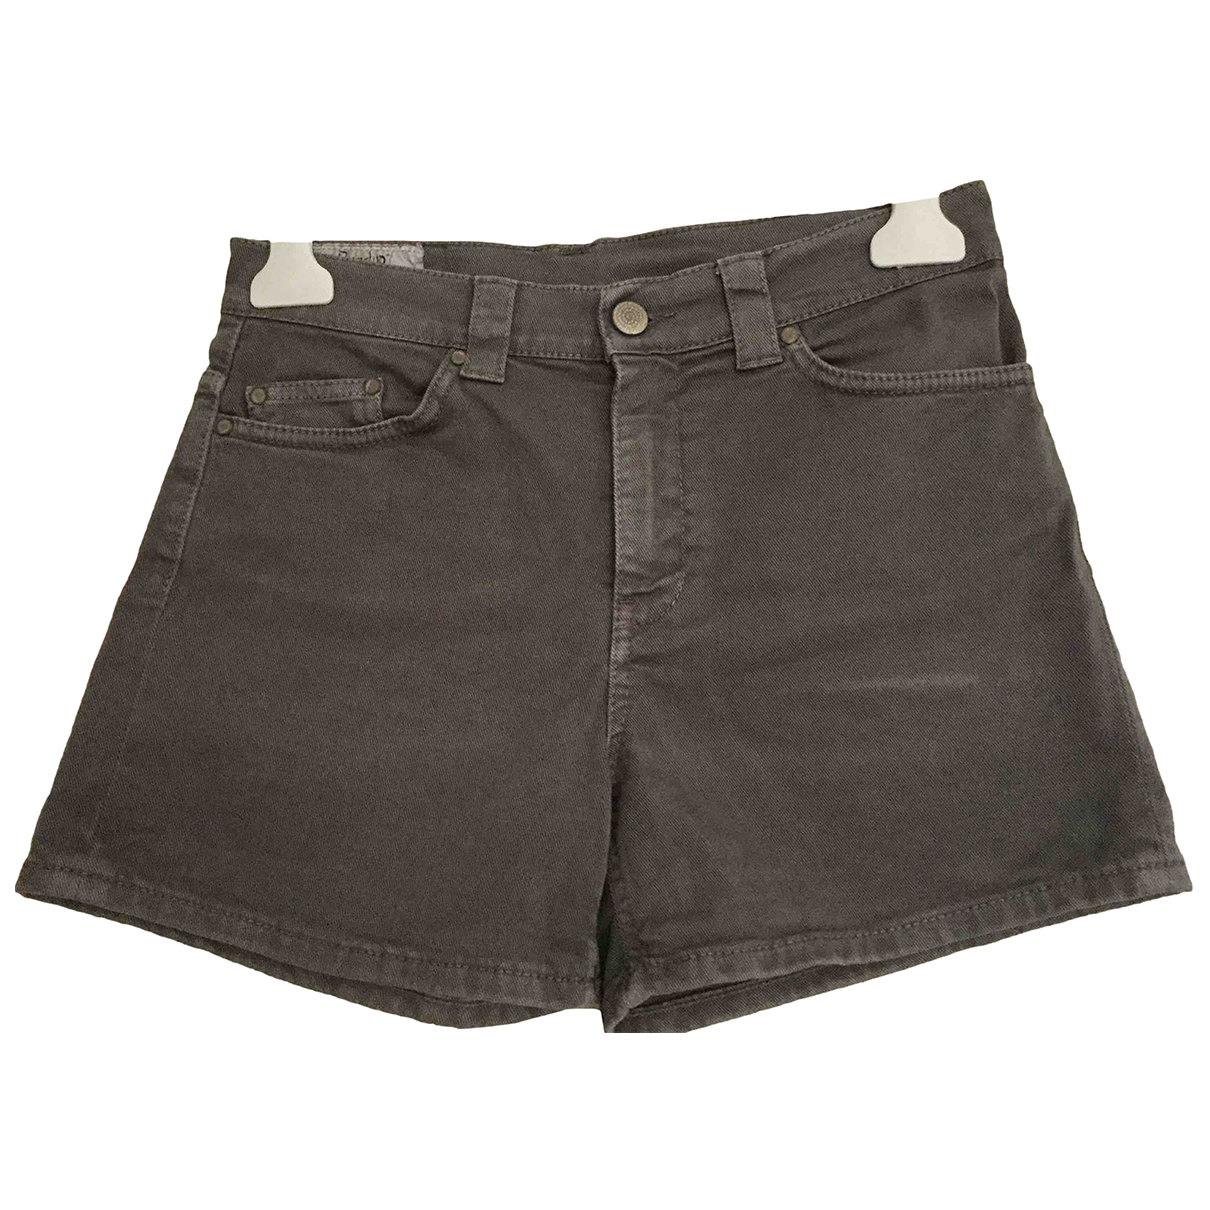 Dondup \N Brown Denim - Jeans Shorts for Women 40 IT